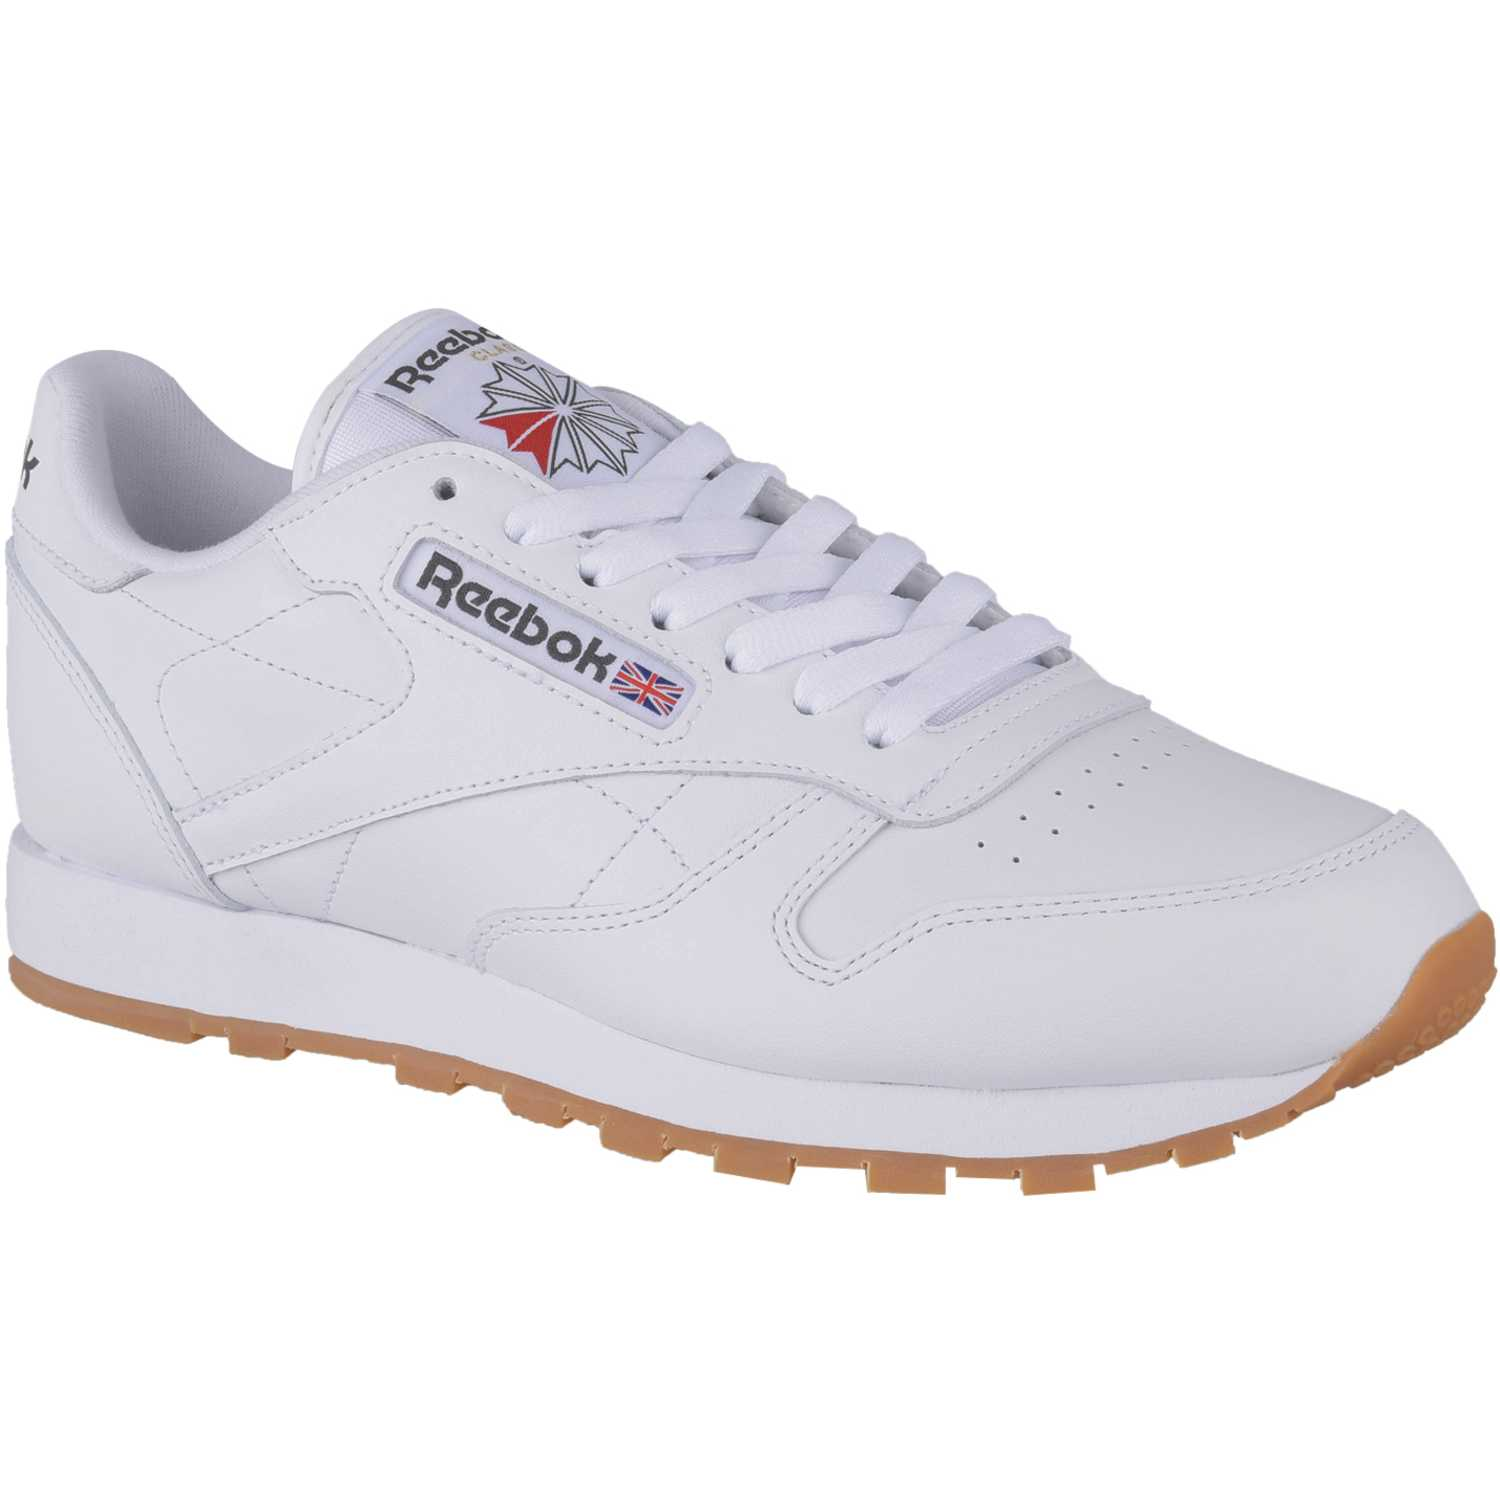 Ballerinas de Mujer Reebok Blanco classic leather